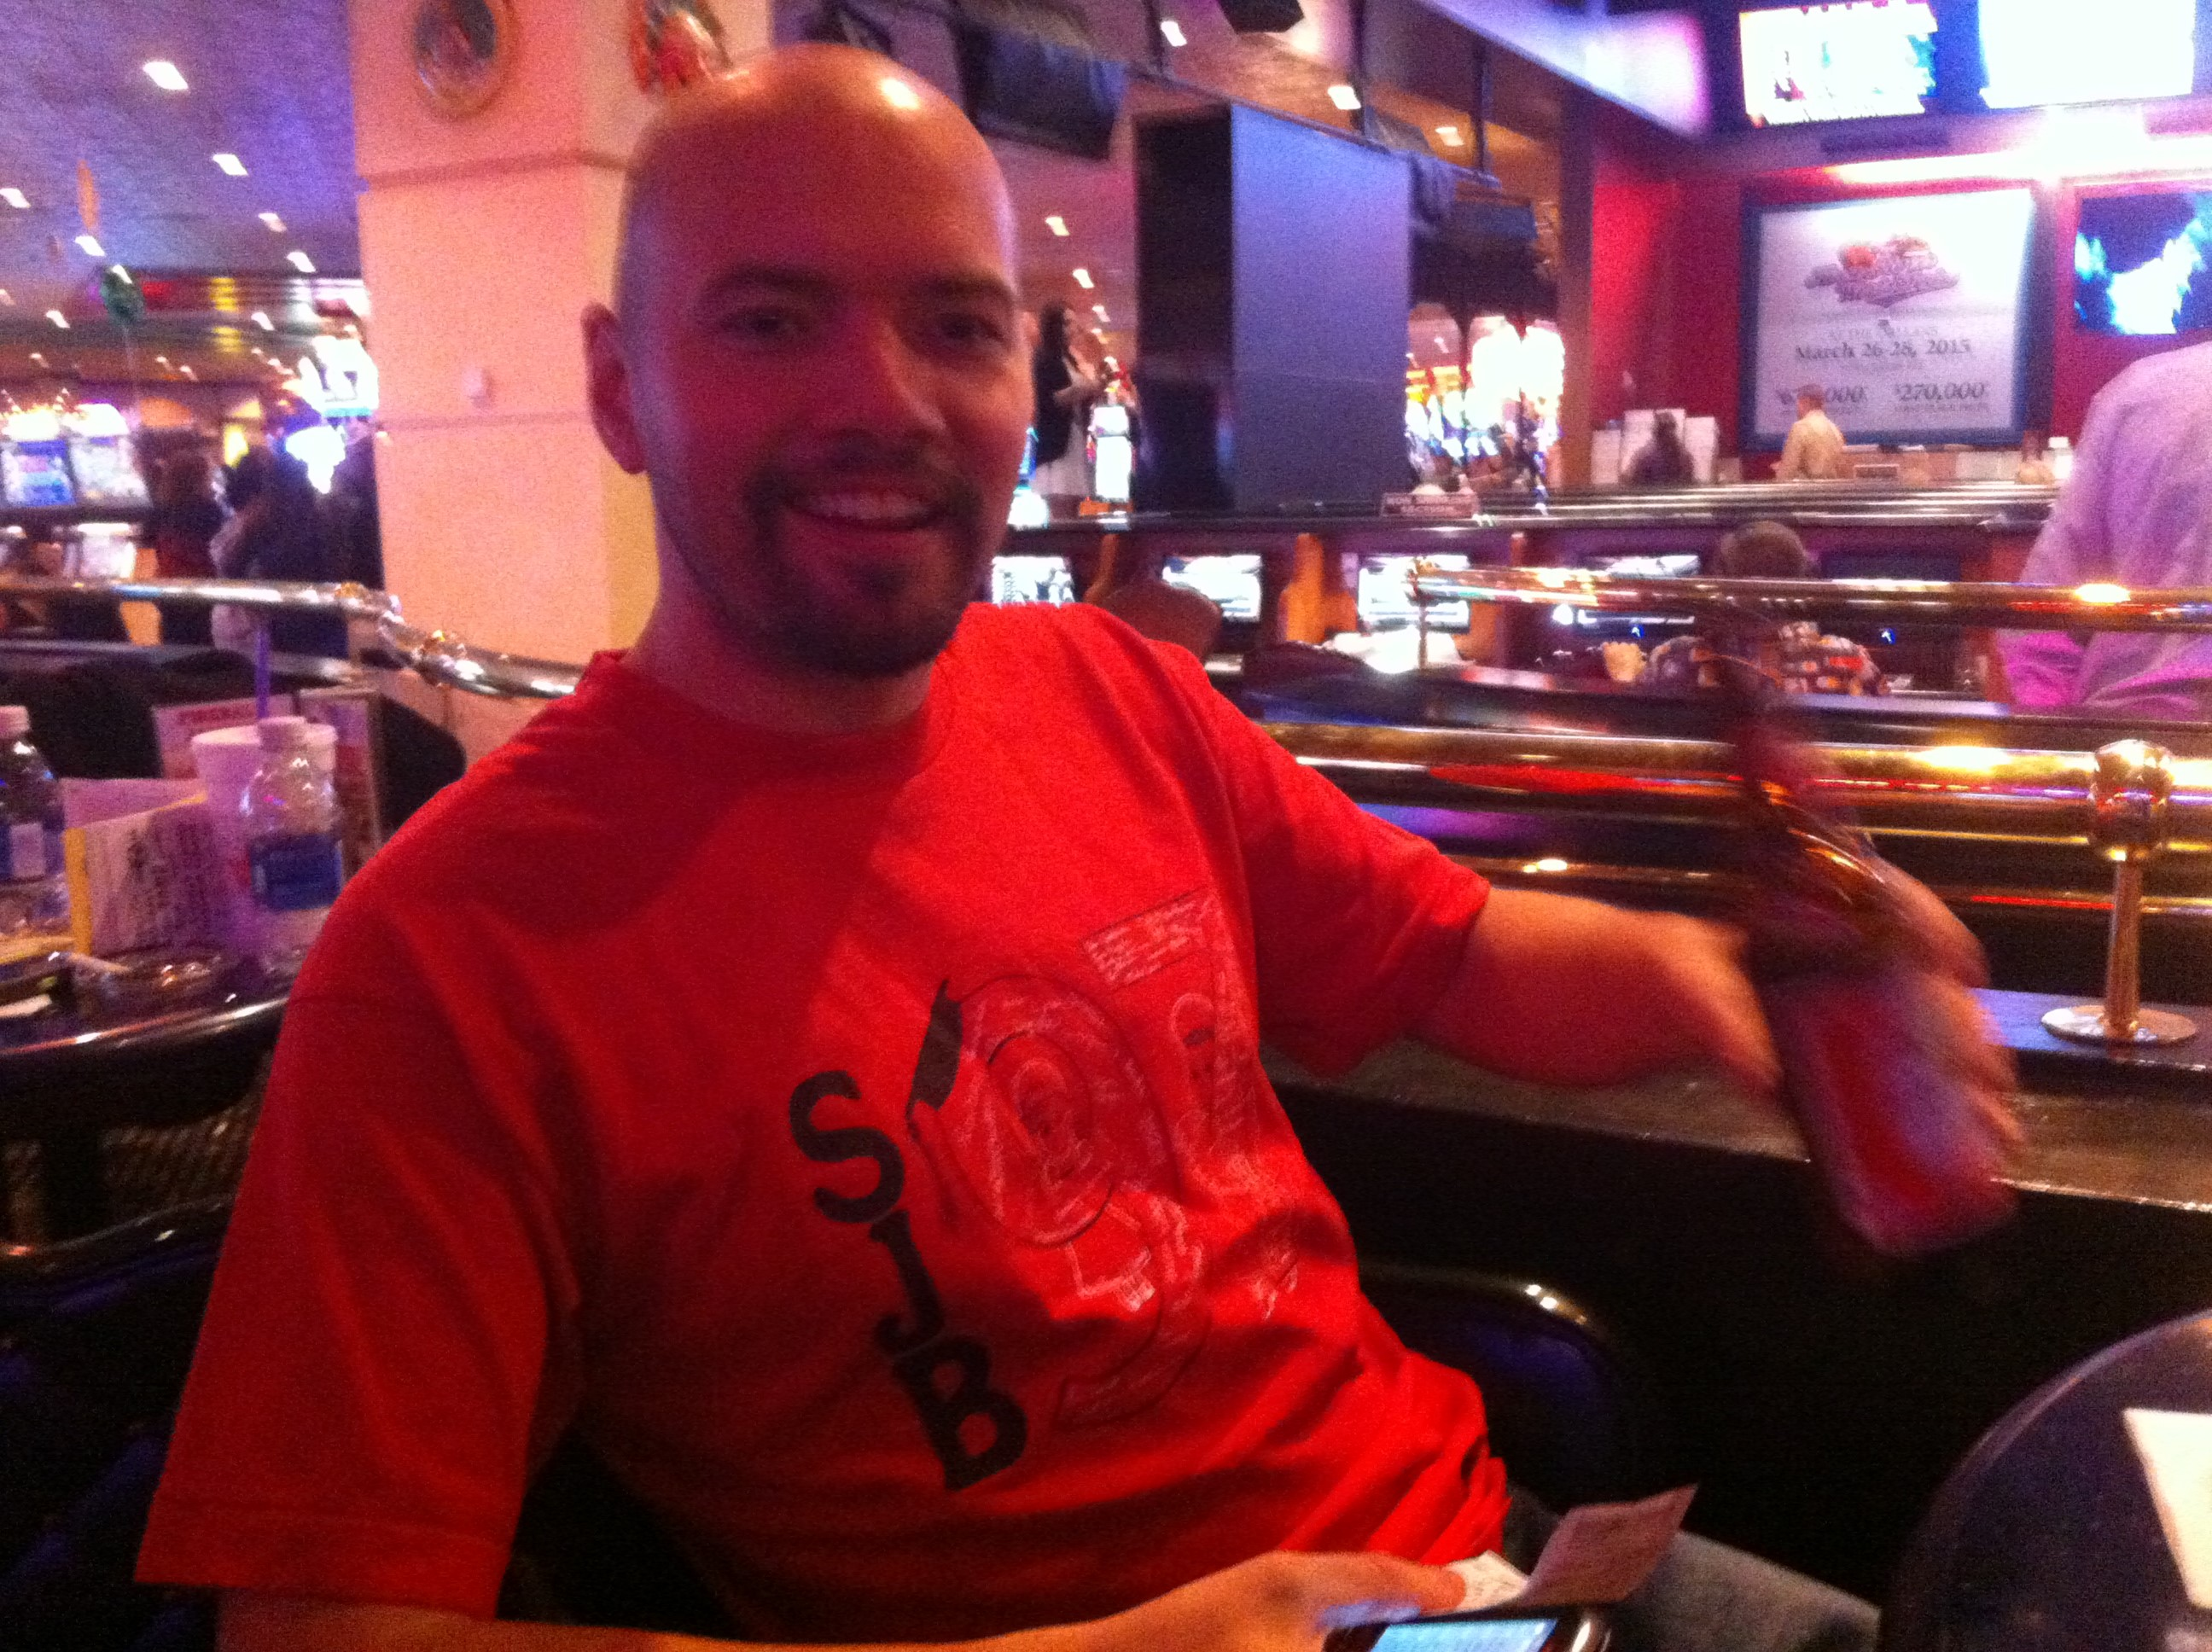 JCR, at the age of 31, on a trip we took to Vegas sporting his 8th grade  graduation shirt.